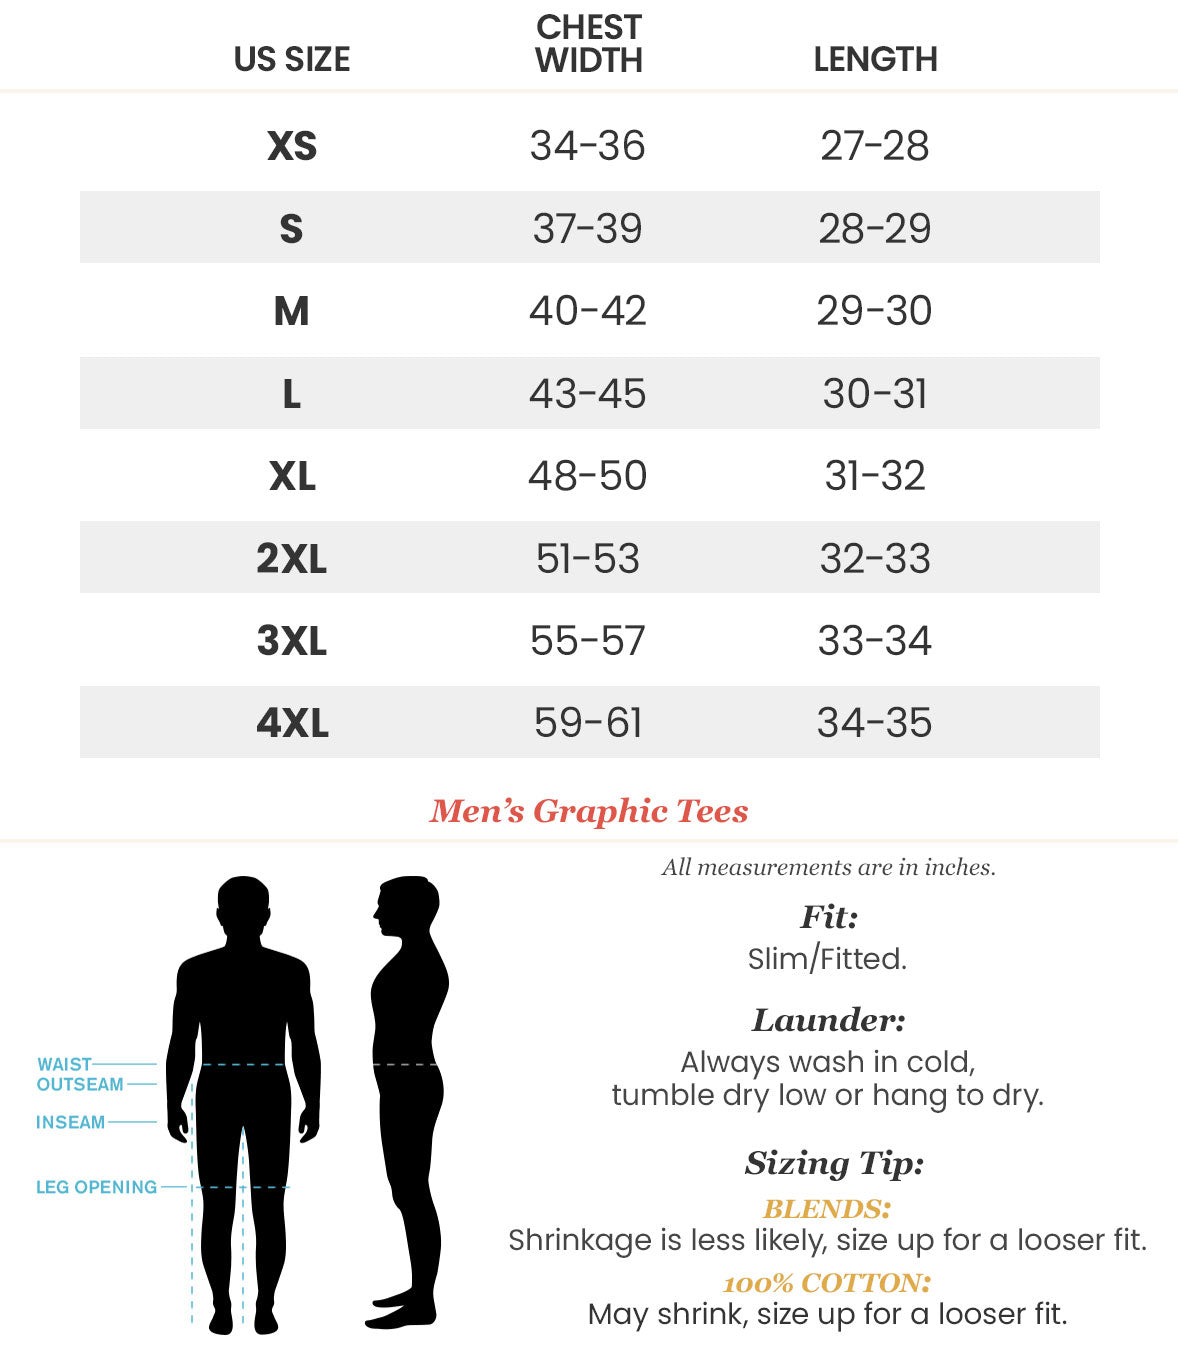 NA210N6-IMP Men's Graphic T-Shirt Size Chart